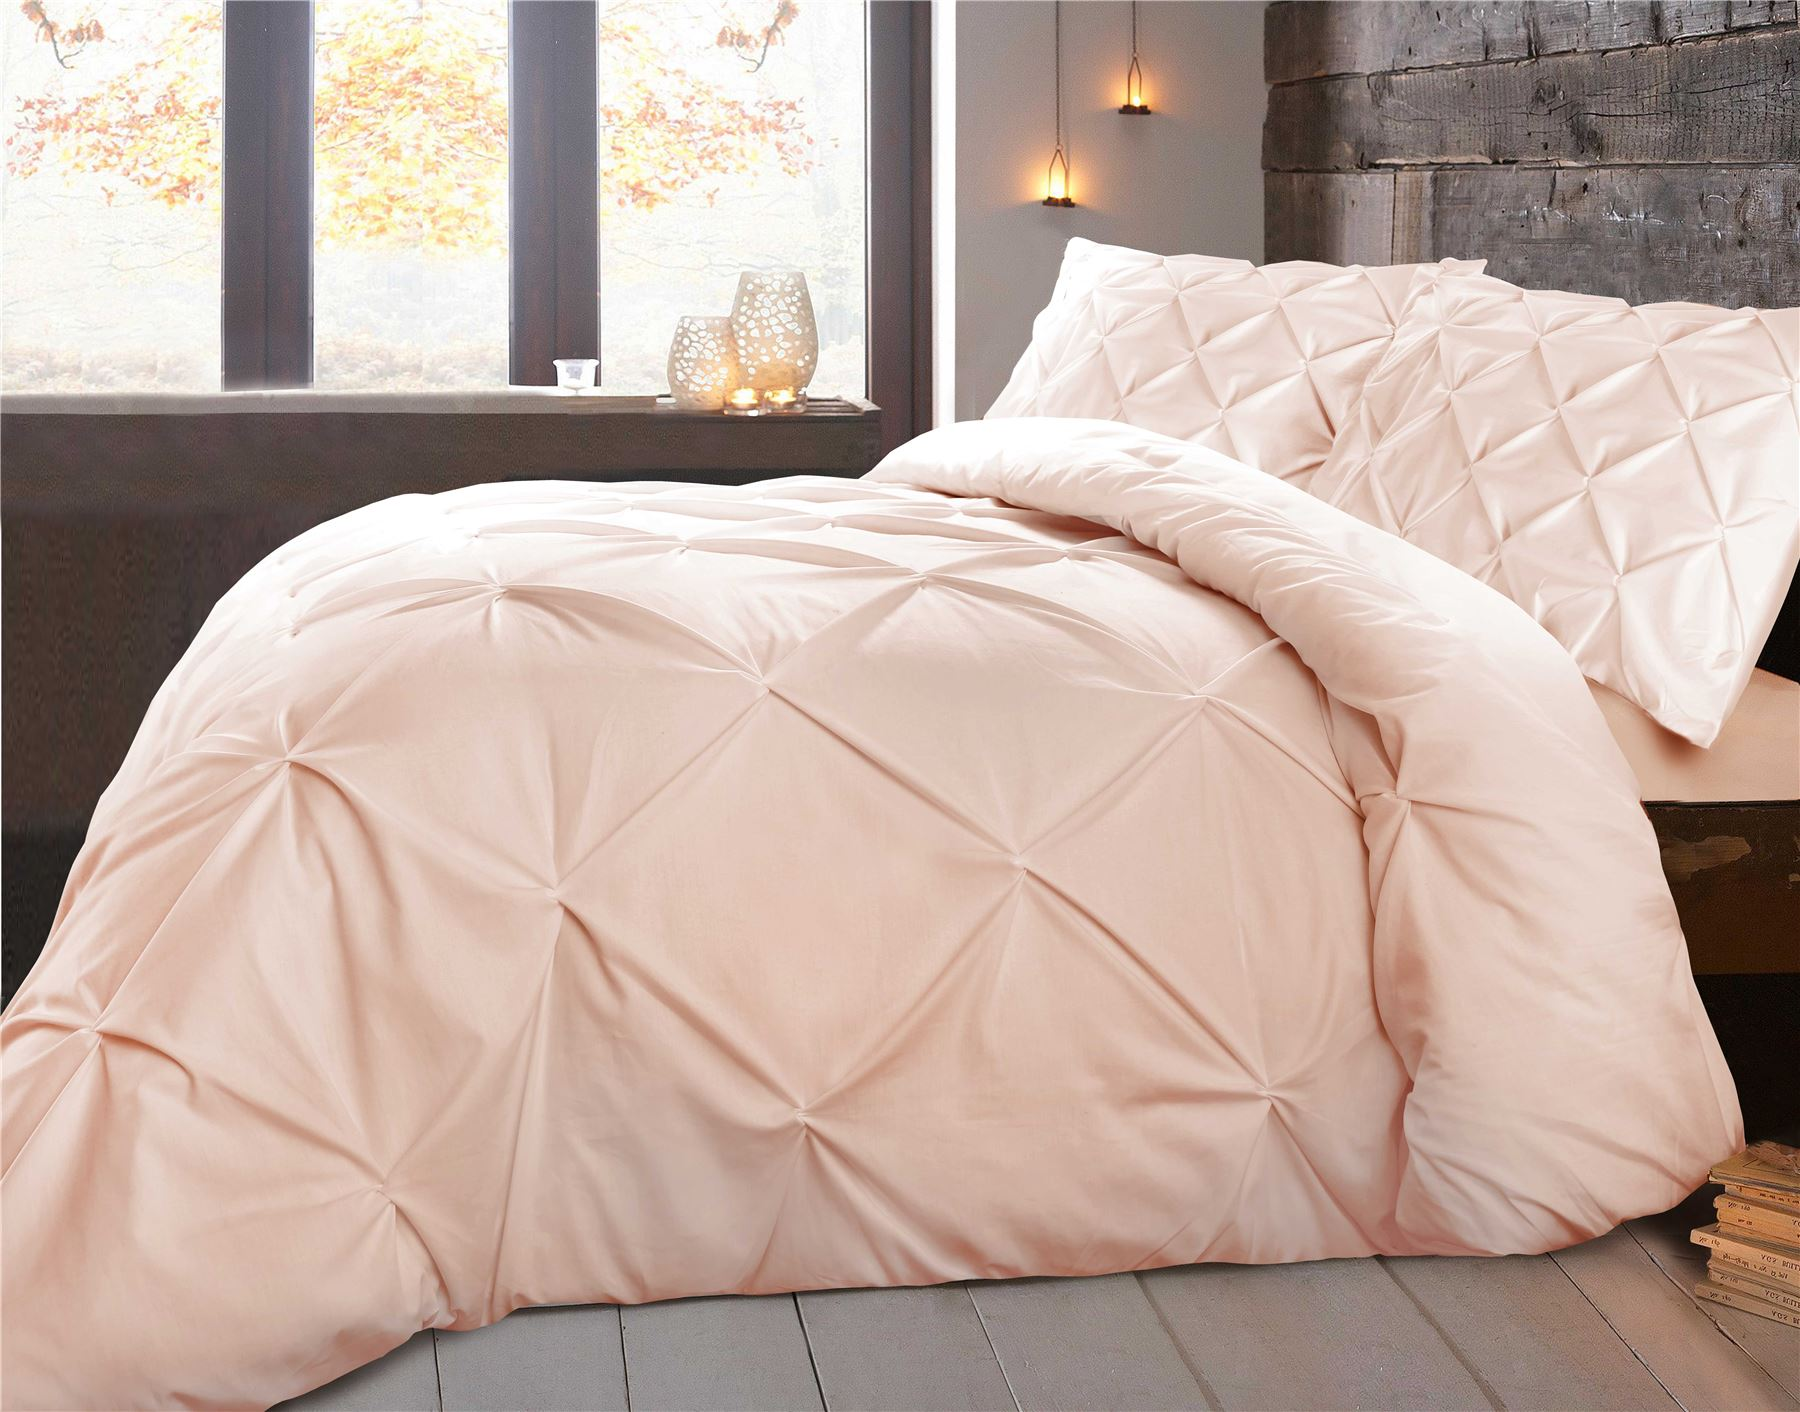 pinch truly pleated free pleat shipping set bedding today product aaff solid soft overstock comforter bath piece duvet cover